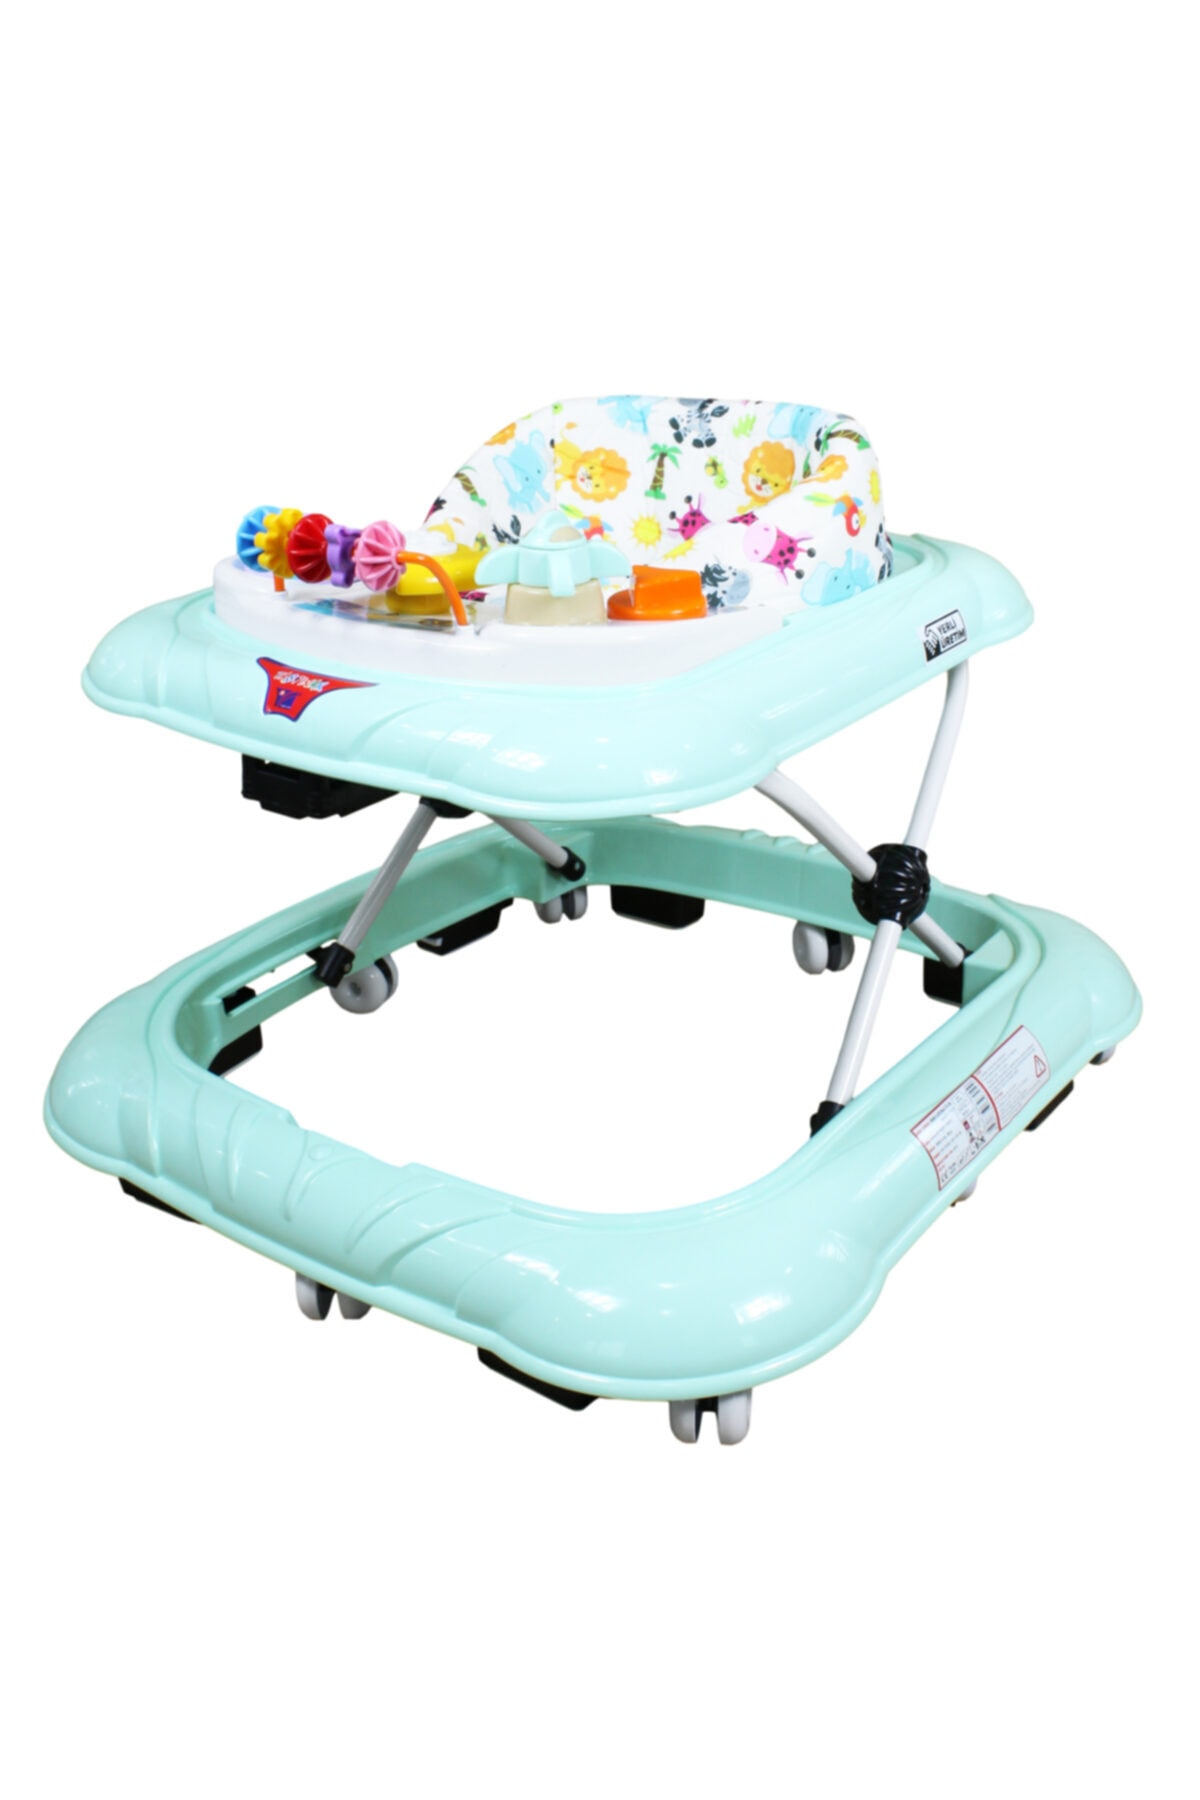 Wheeled Baby Walker Baby Walker Learning Anti Tipping Walker for baby boy Foldable Baby walker wit wheel Wheel Walker Multifunctional Seat Car Baby Walker Multifunction недорого